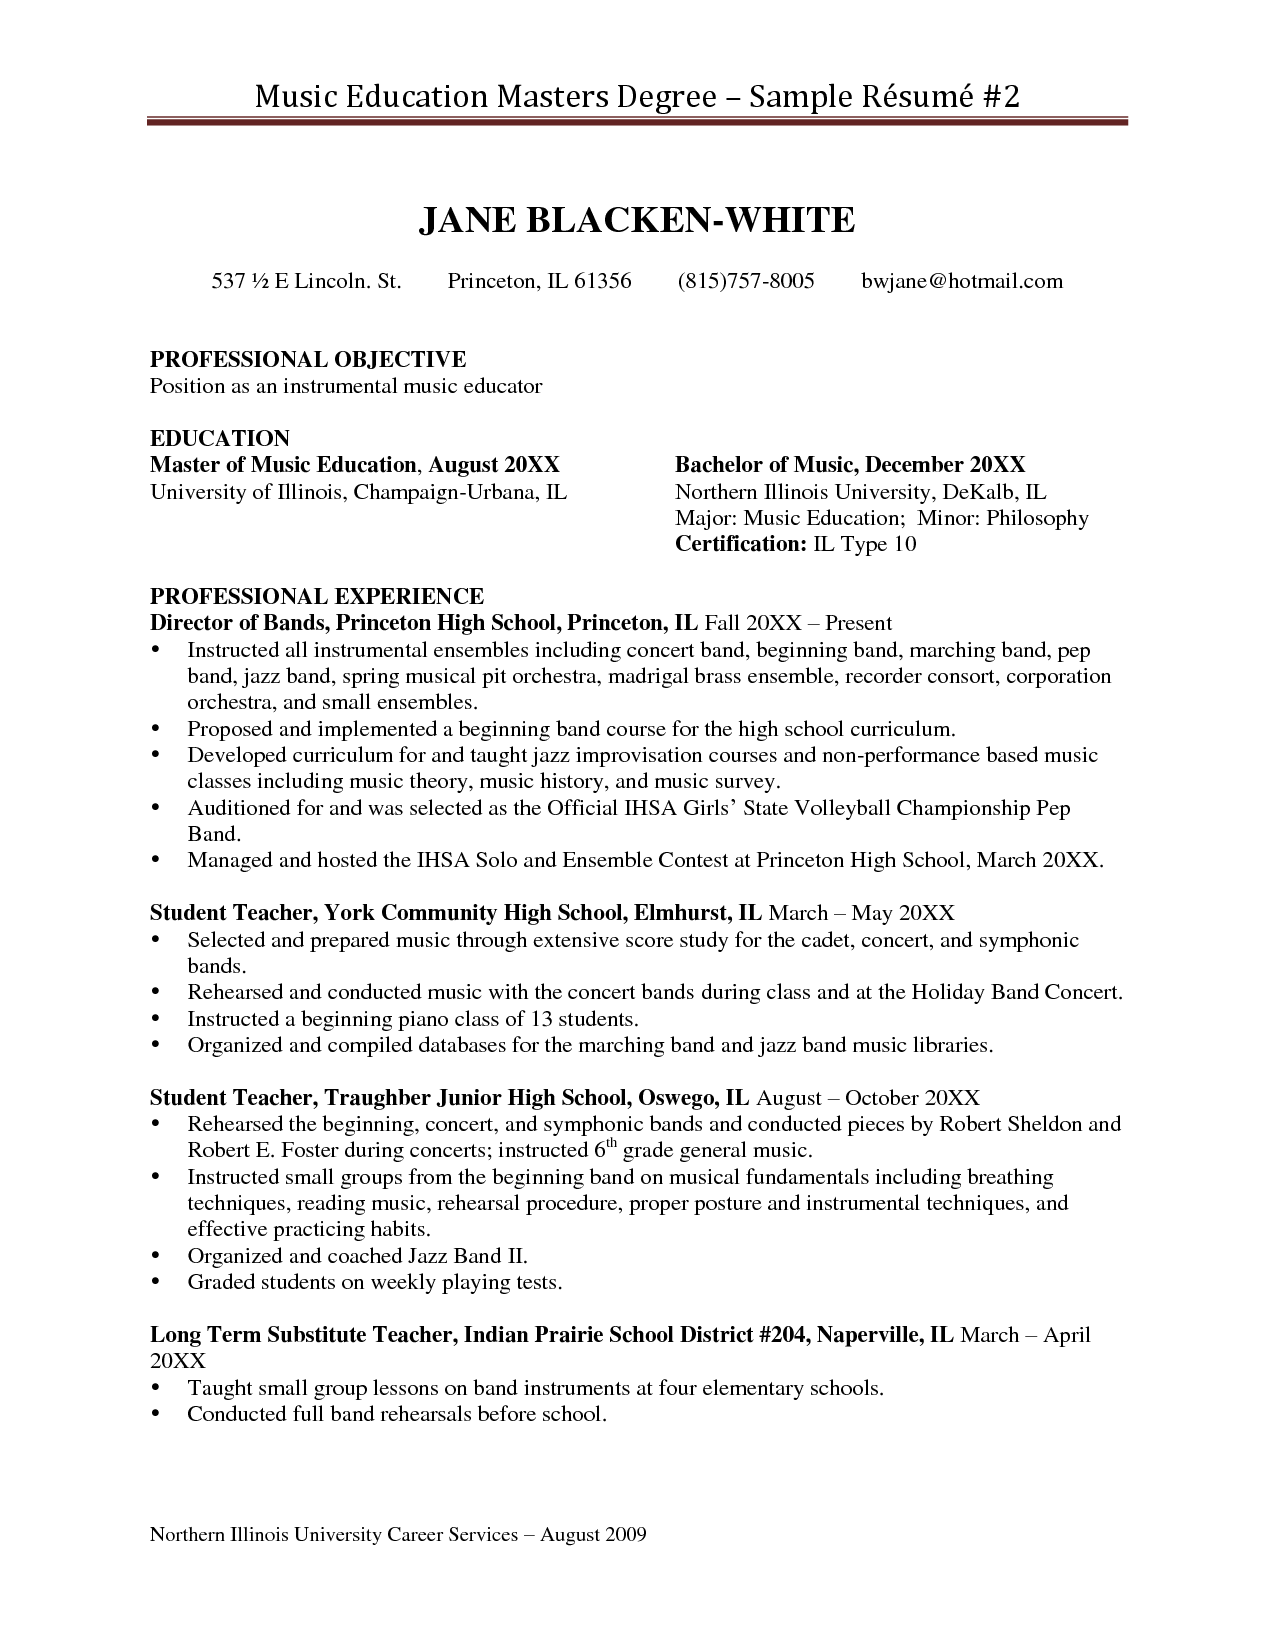 Princeton Resume Template Graduate Teachers Resume Example  Google Search  Getting A Job